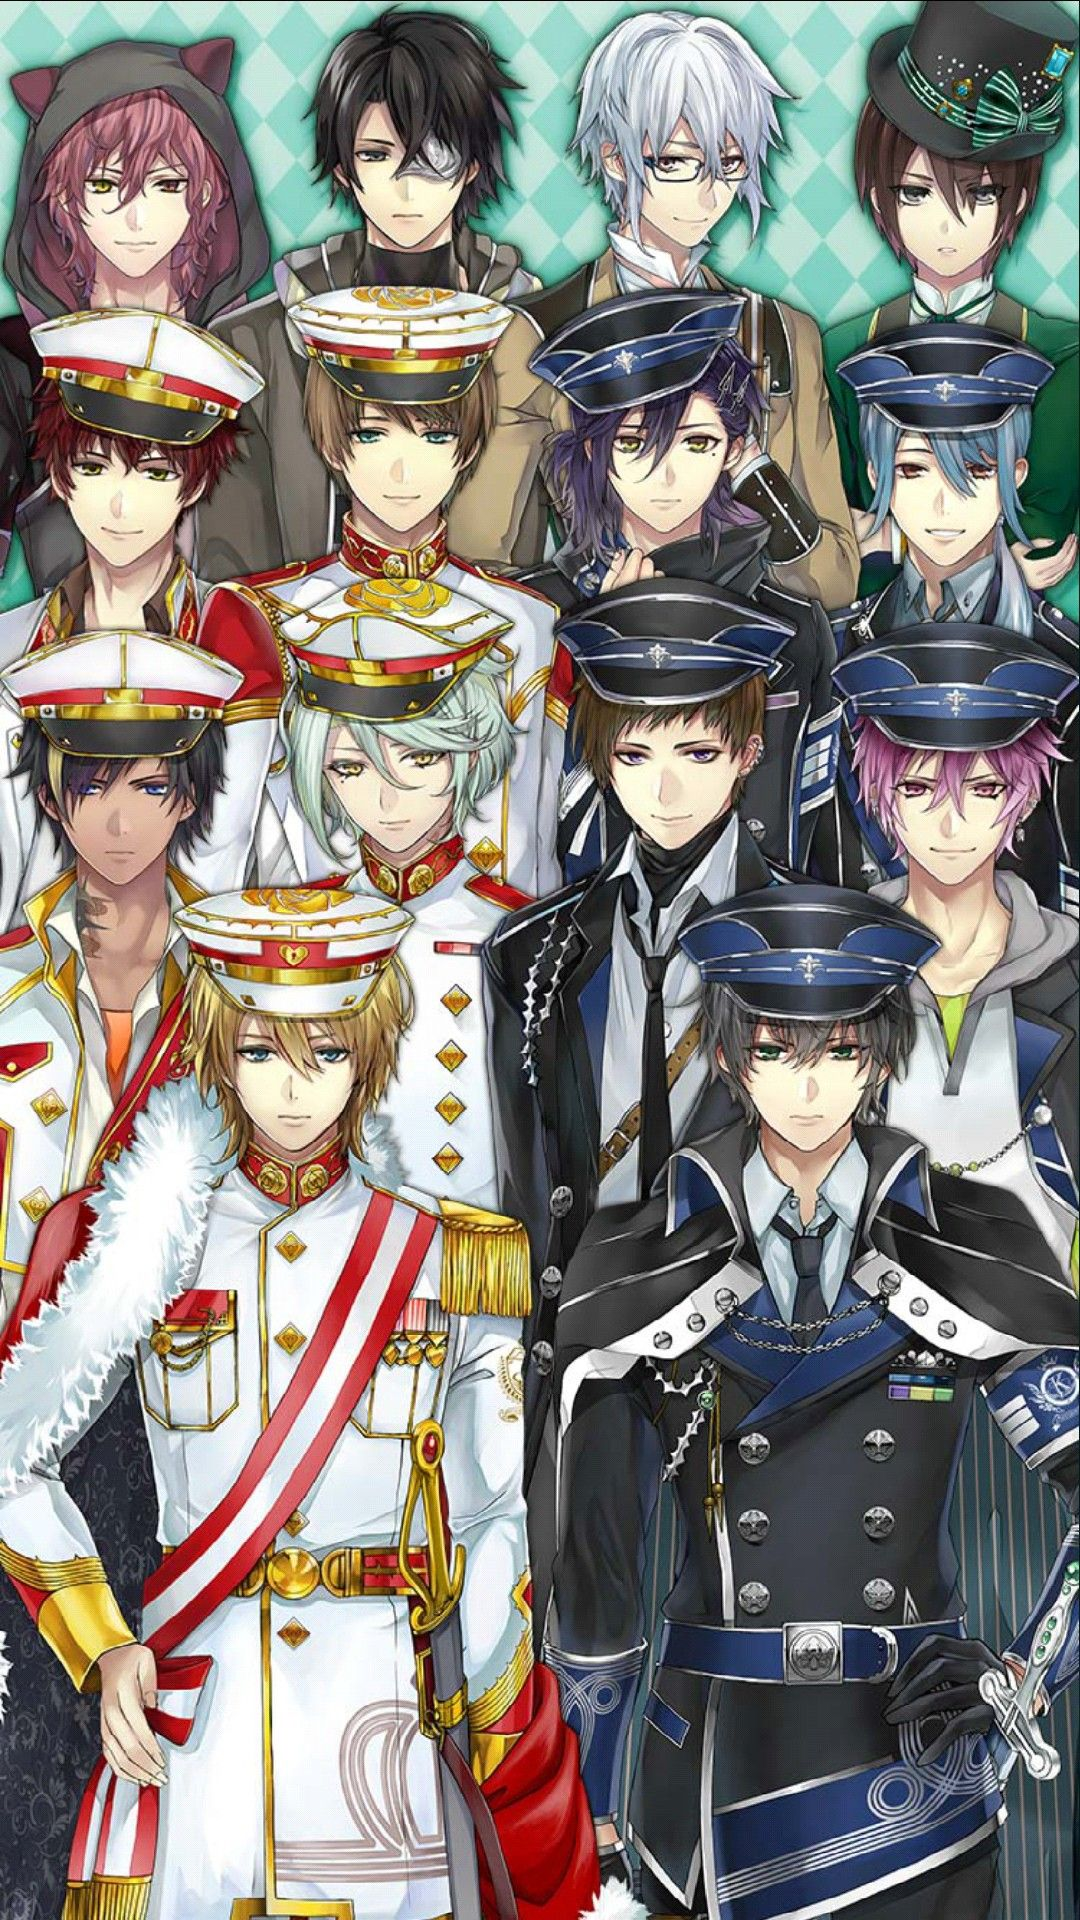 Ikemen Revolution in 2020 (With images) Anime guys